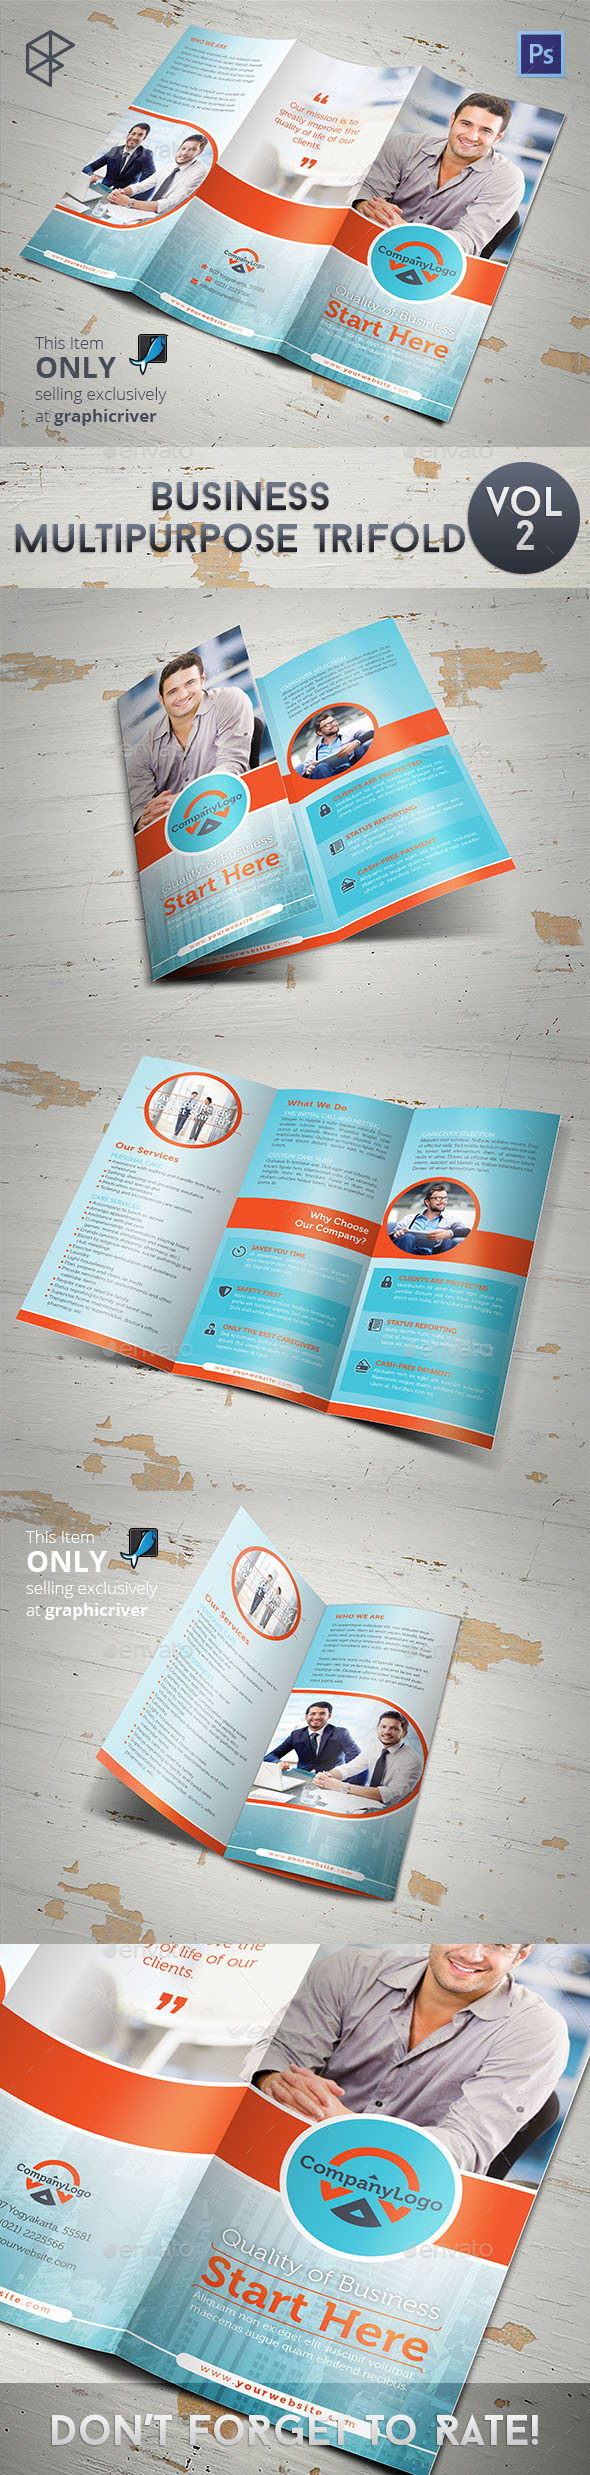 Business Multipurpose Trifold Vol 2 - Informational Brochures